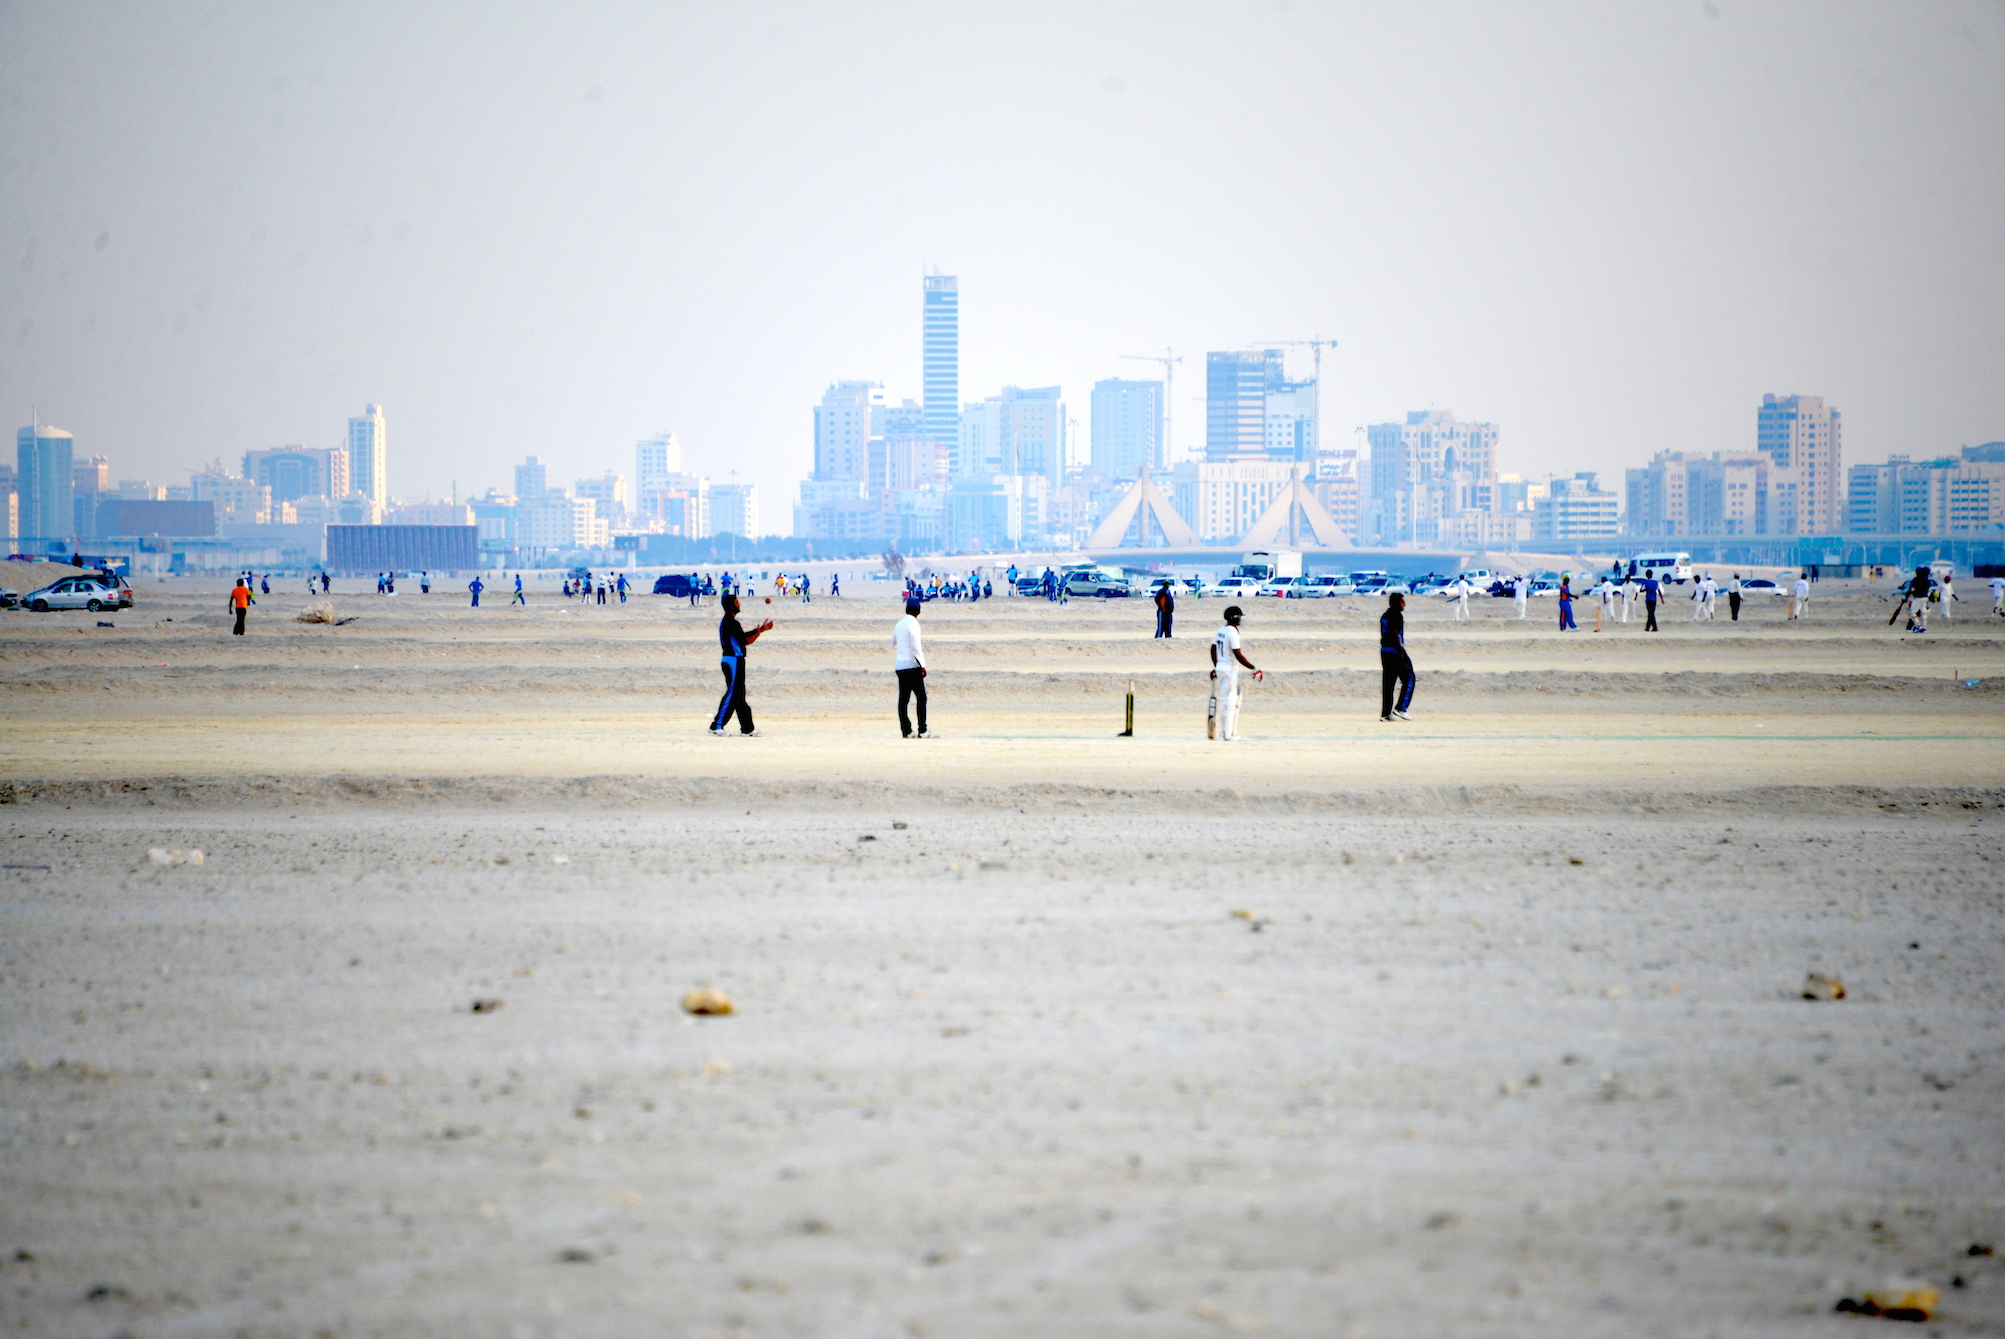 'Beach' cricket in Bahrain